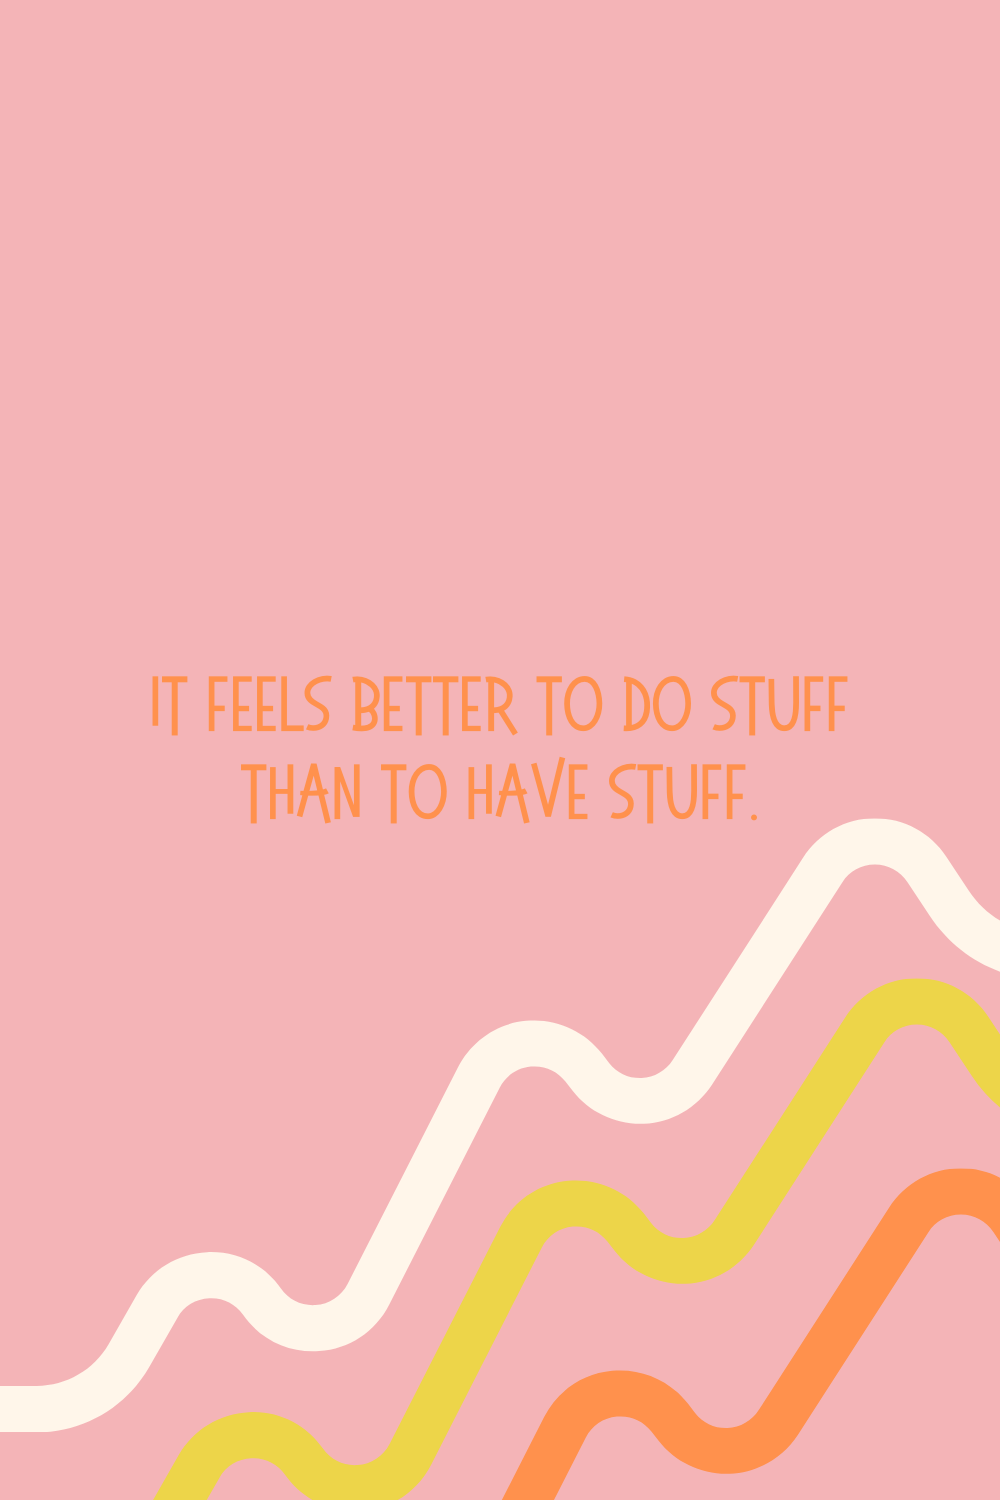 Quotes about having too much stuff